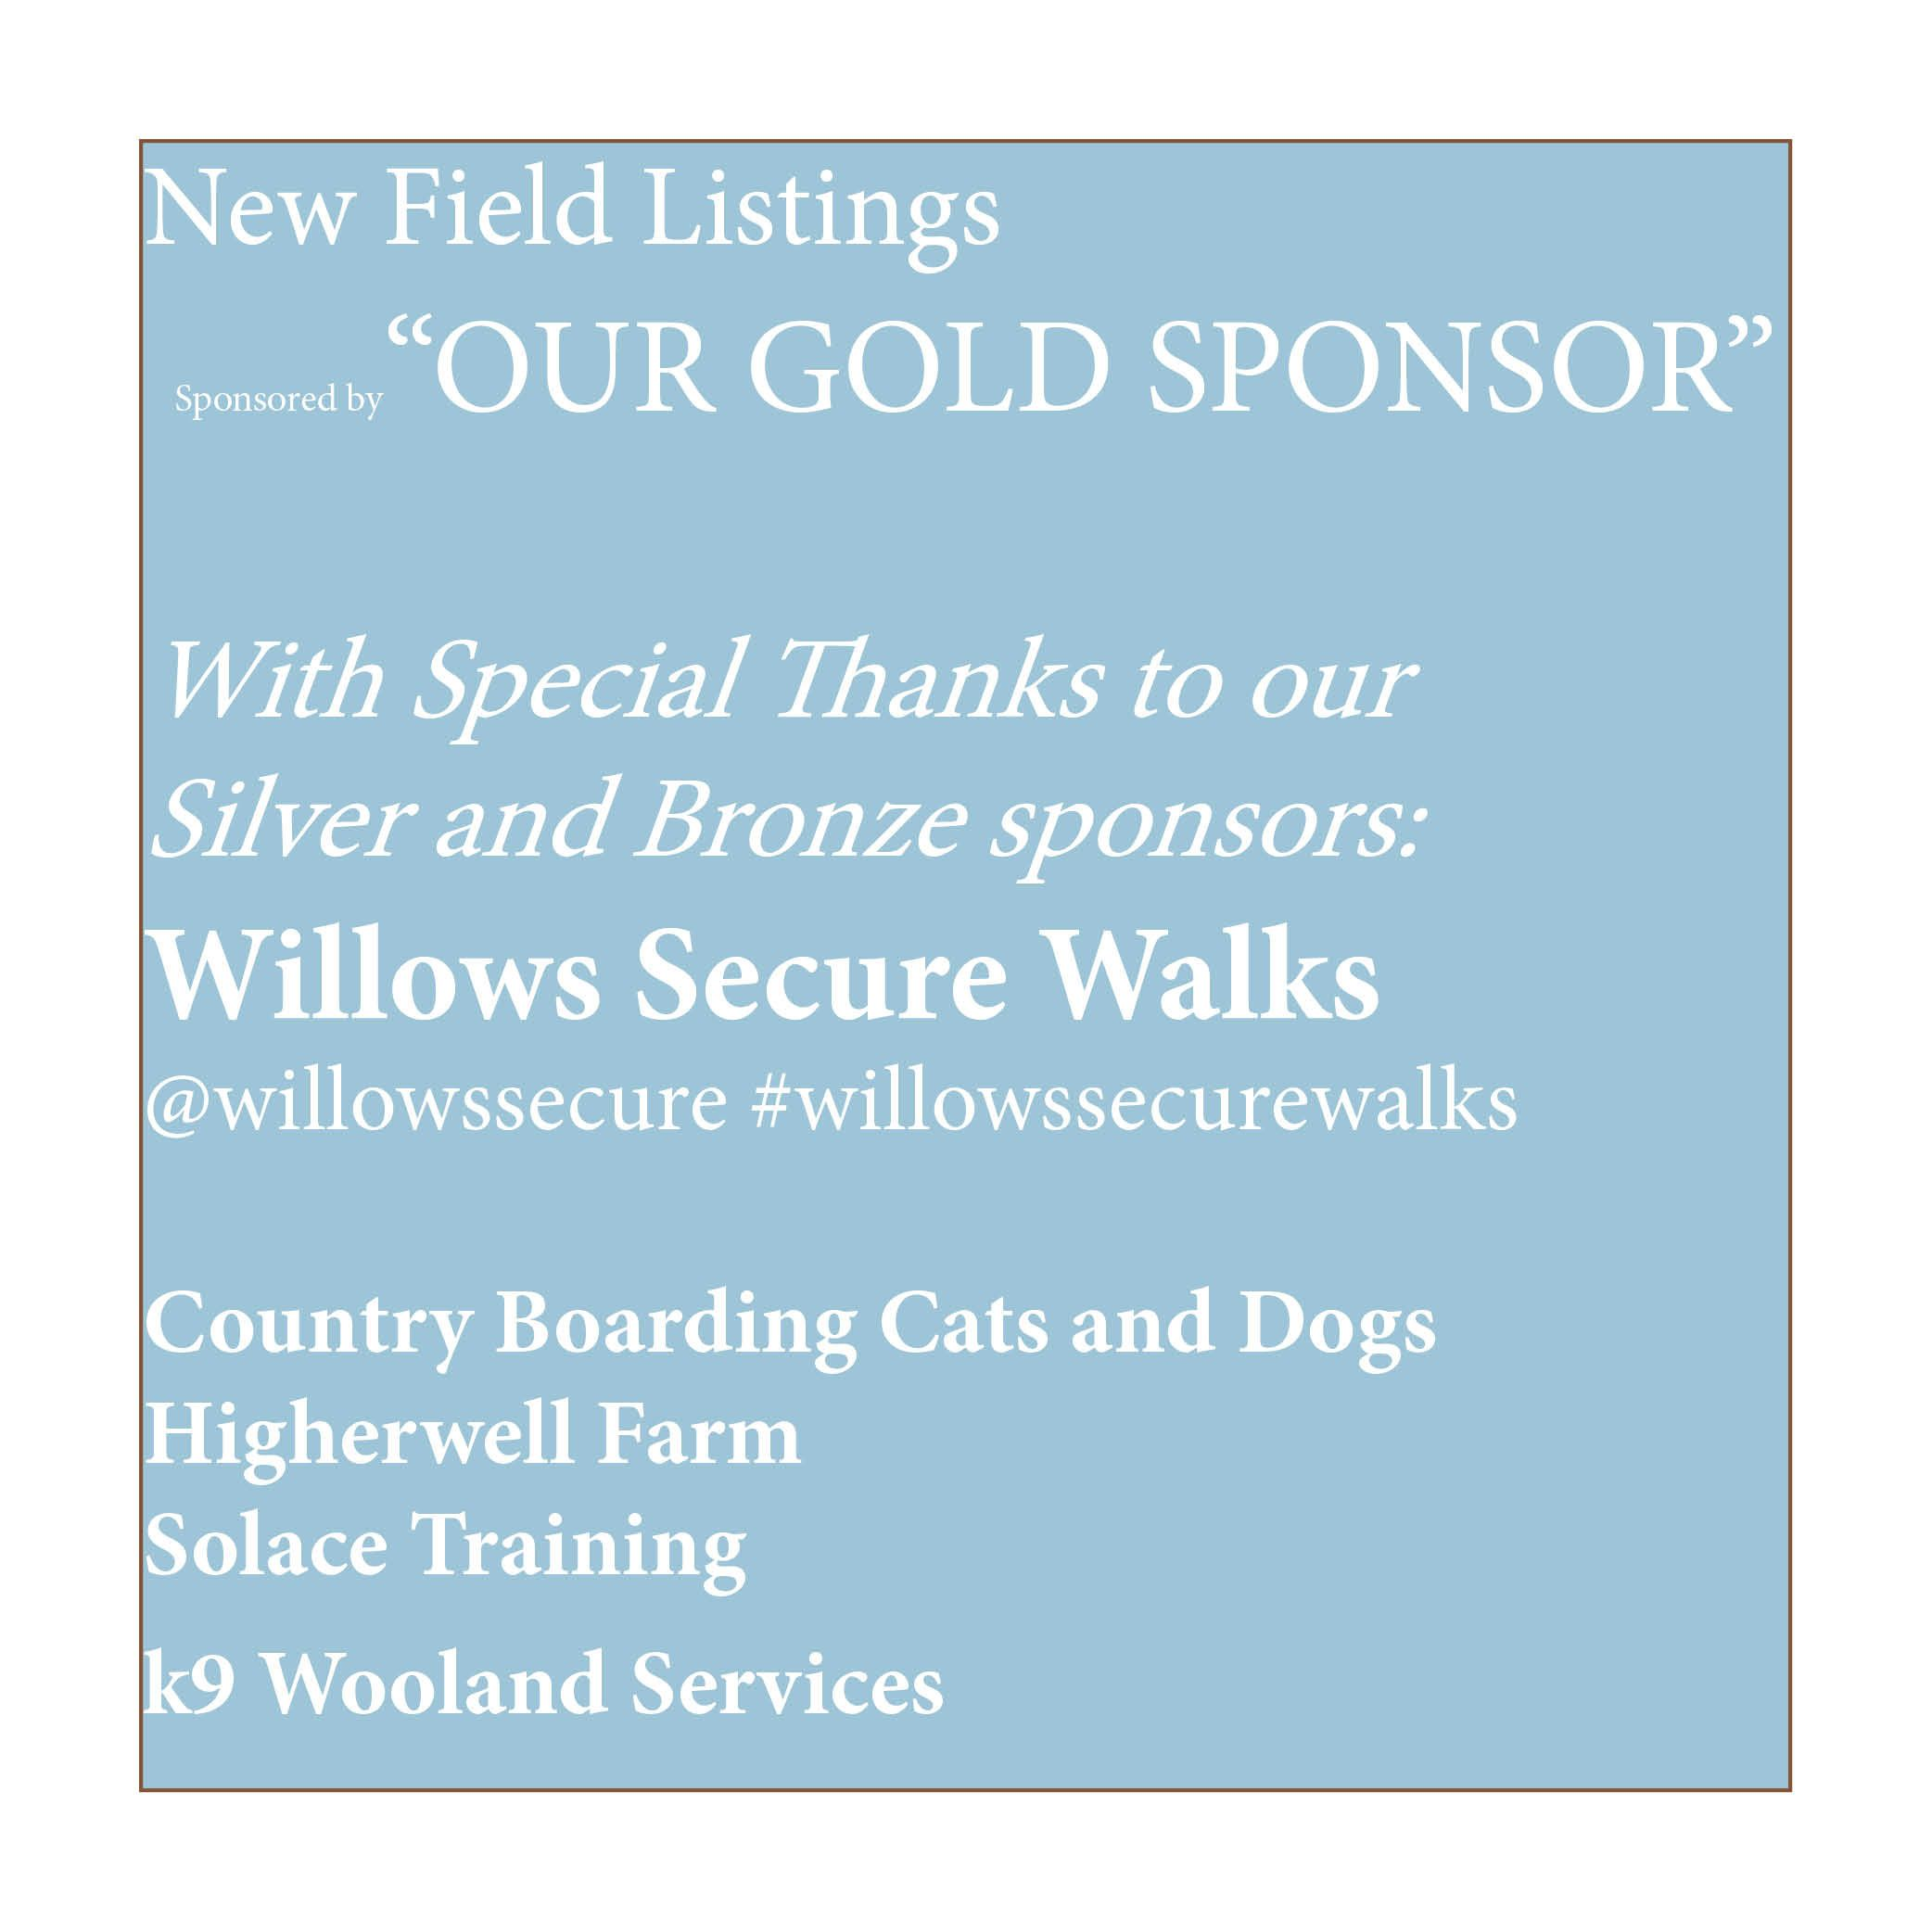 3 Acre Secure Dog Paddock Near Burwash Burwash Common Etchingham Sussex Tn19 7lh Contact Culpeppers7 Btin Dog Play Area Dog Exercise